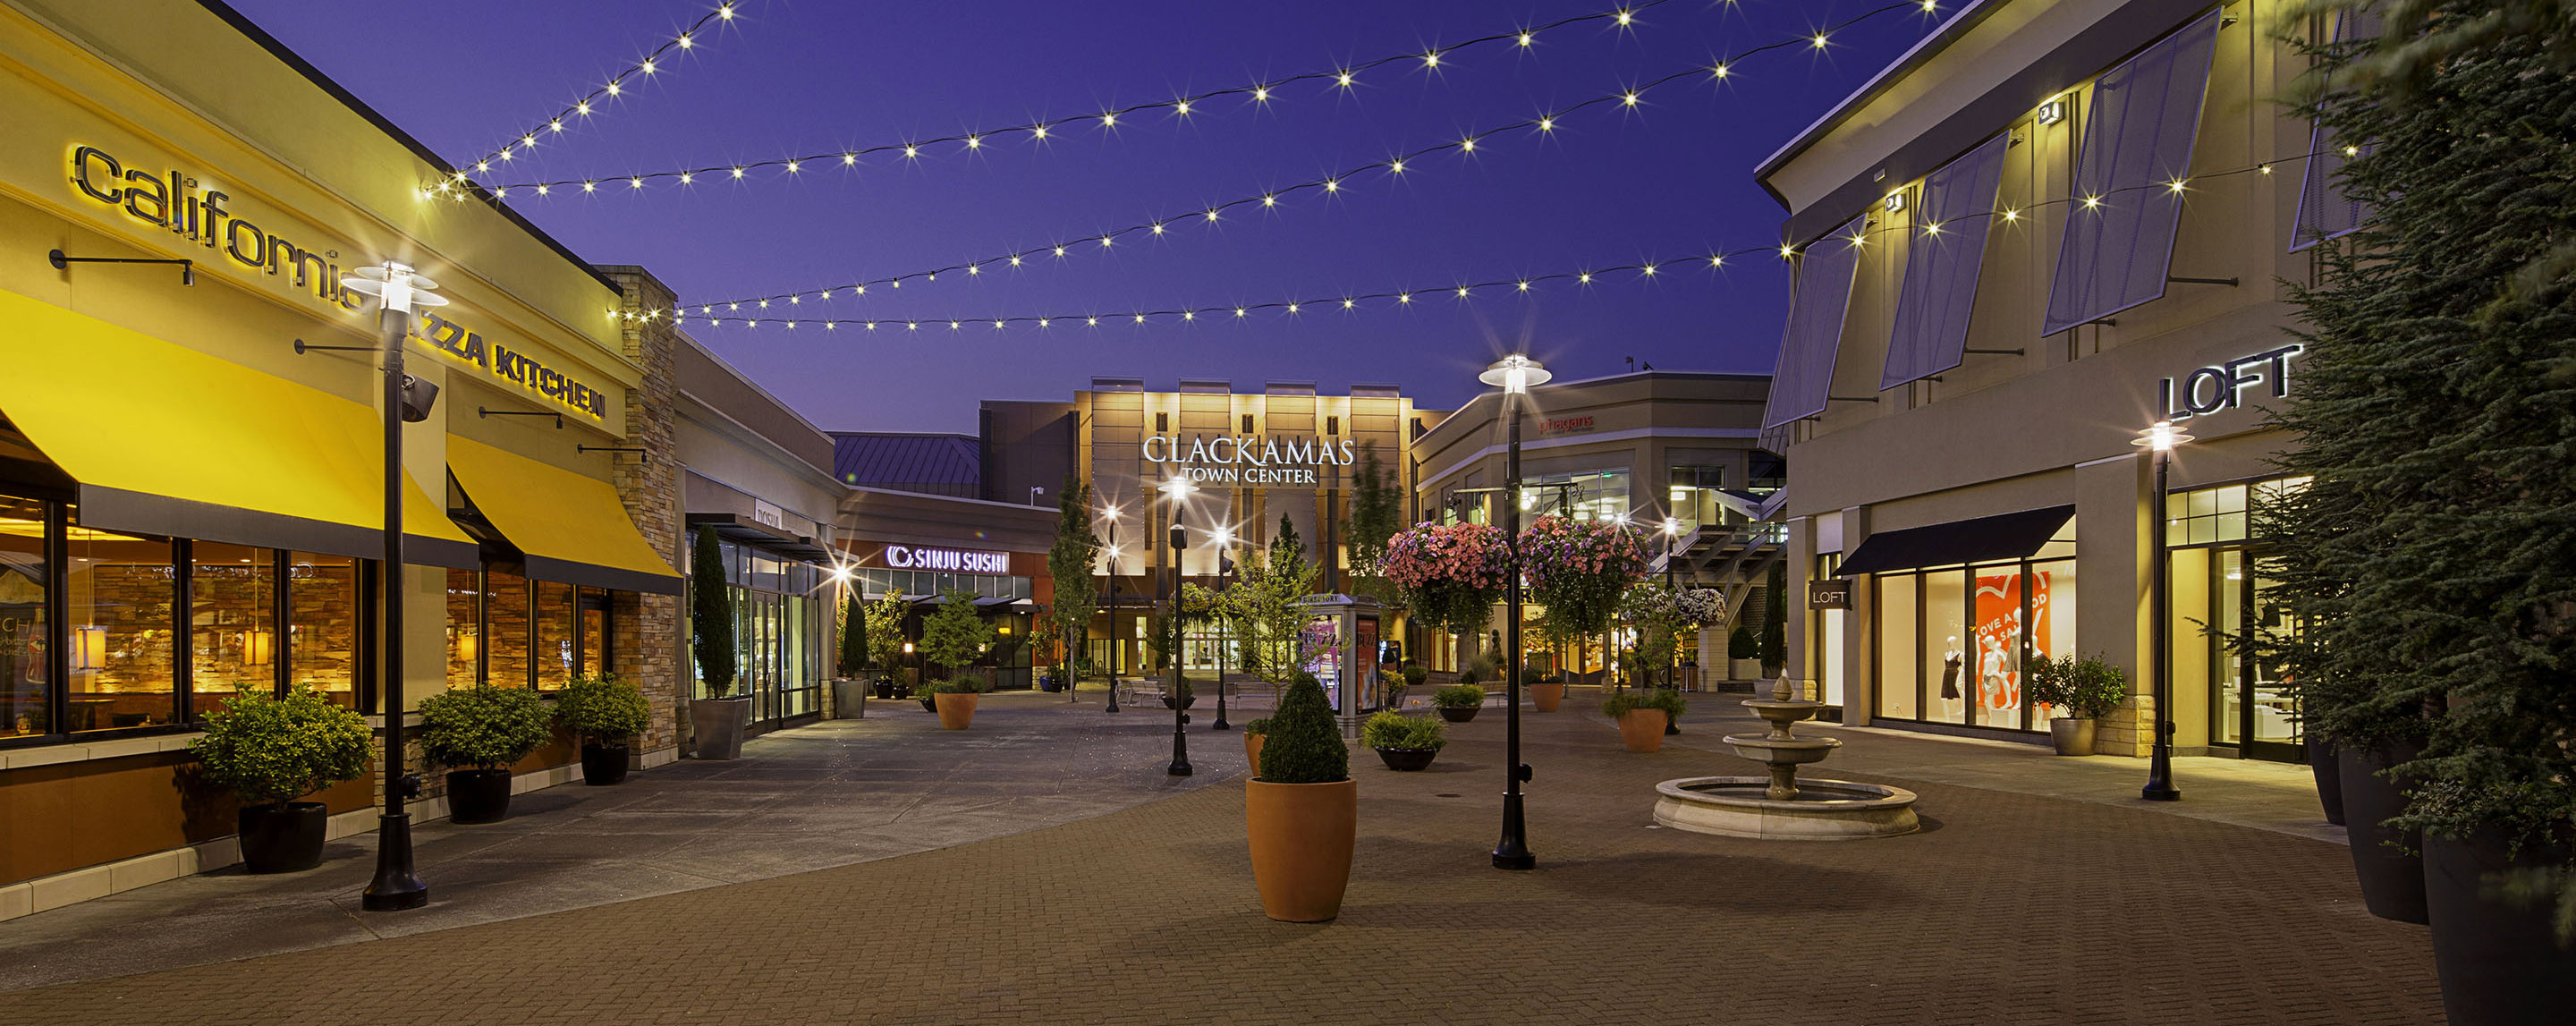 Outside Clackamas Town Center at night, the common area is lit up with string lights and decorated with potted plants, flowers and fountains.